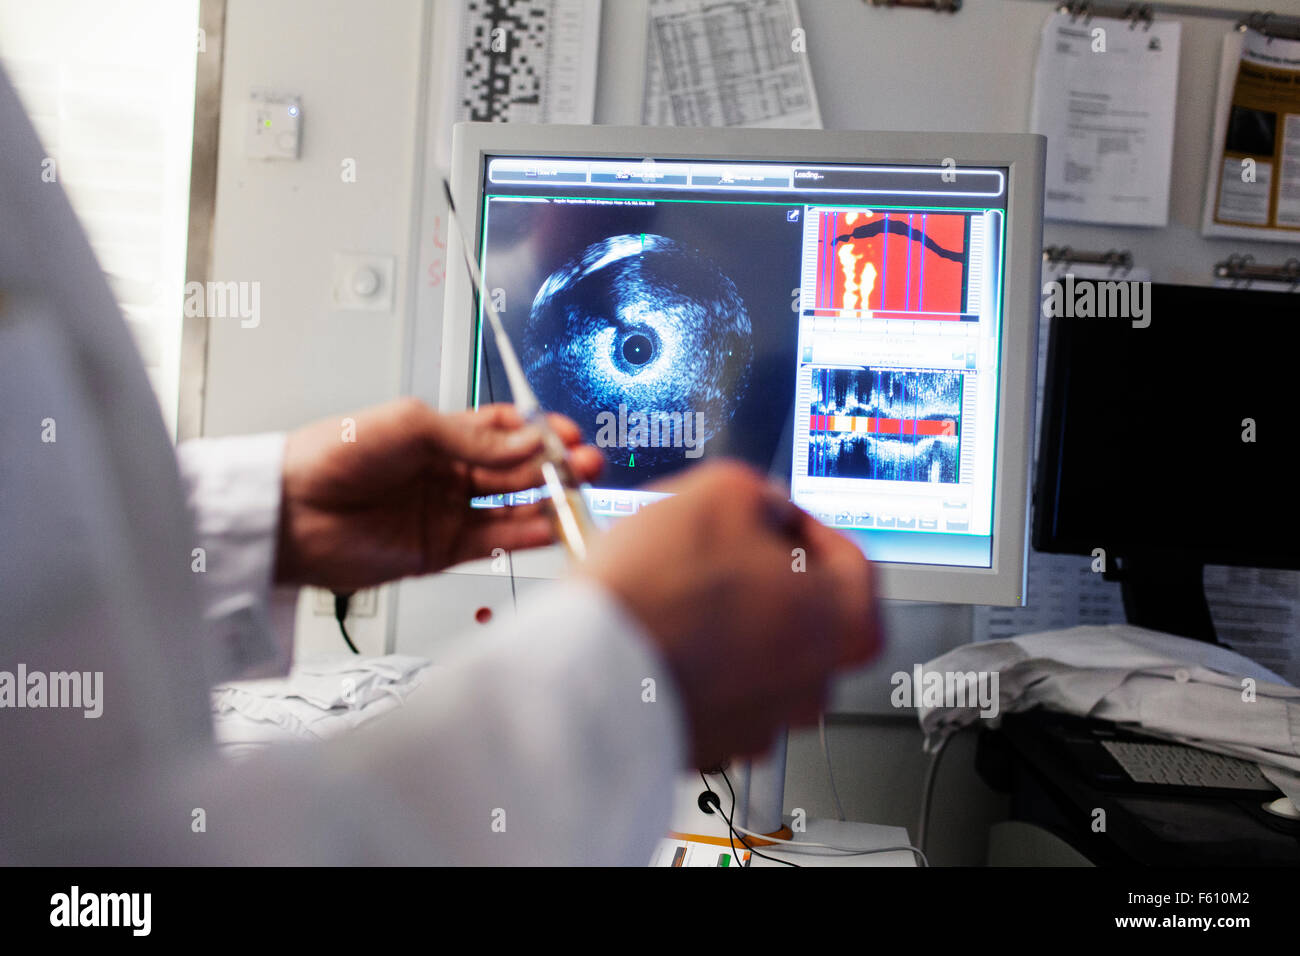 Doctor holding catheter in front of intravascular imaging system - Stock Image